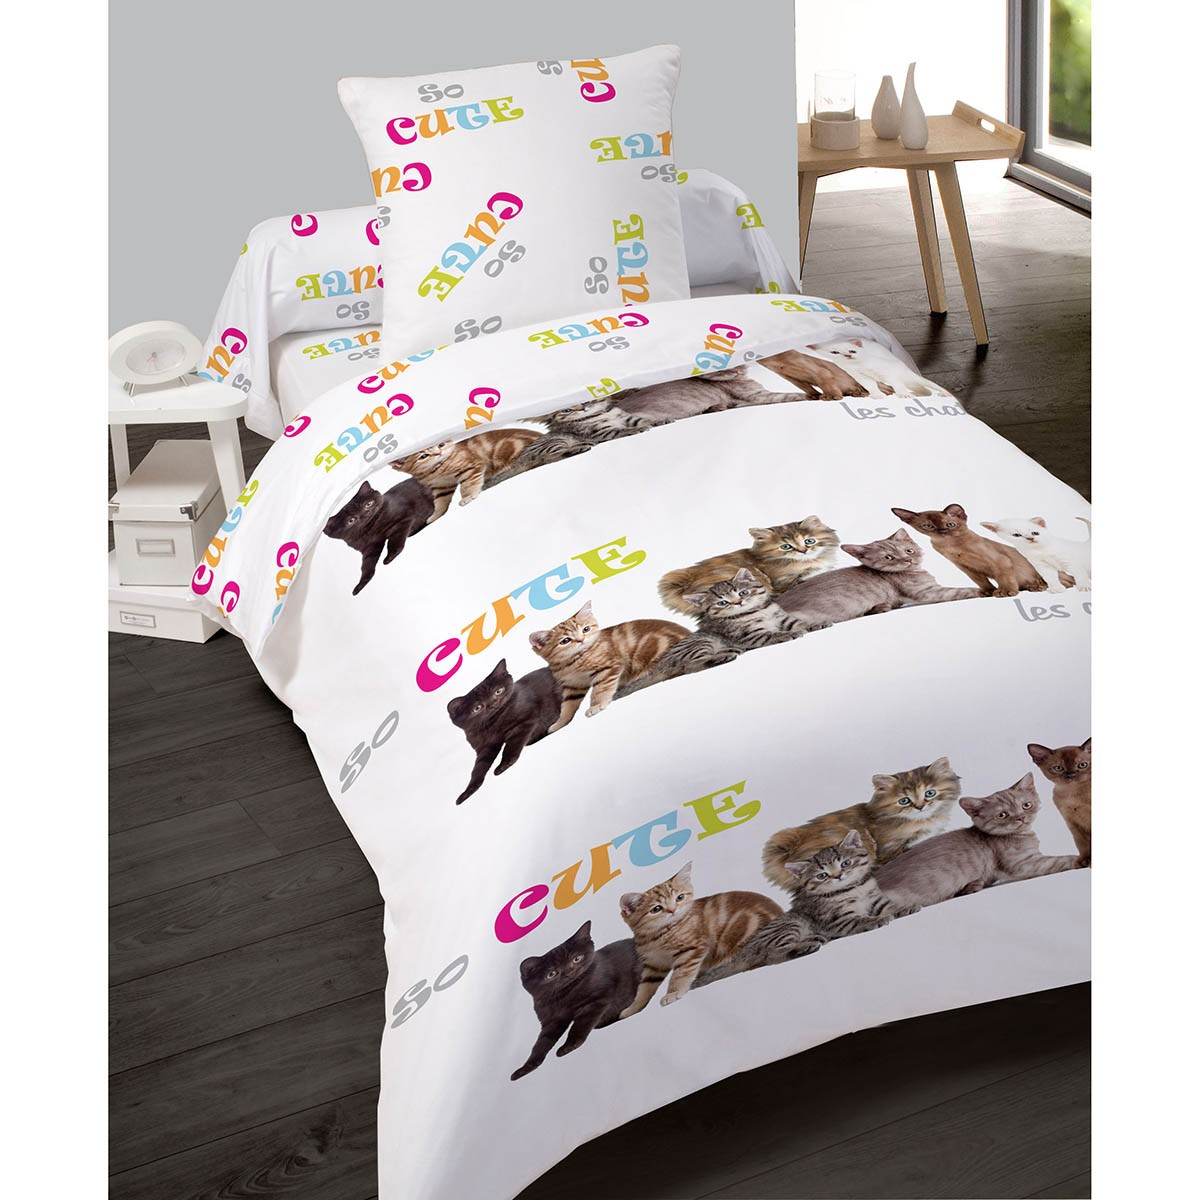 housse de couette 140x200cm so cute chat en polyester les douces nuits de ma linge de maison. Black Bedroom Furniture Sets. Home Design Ideas